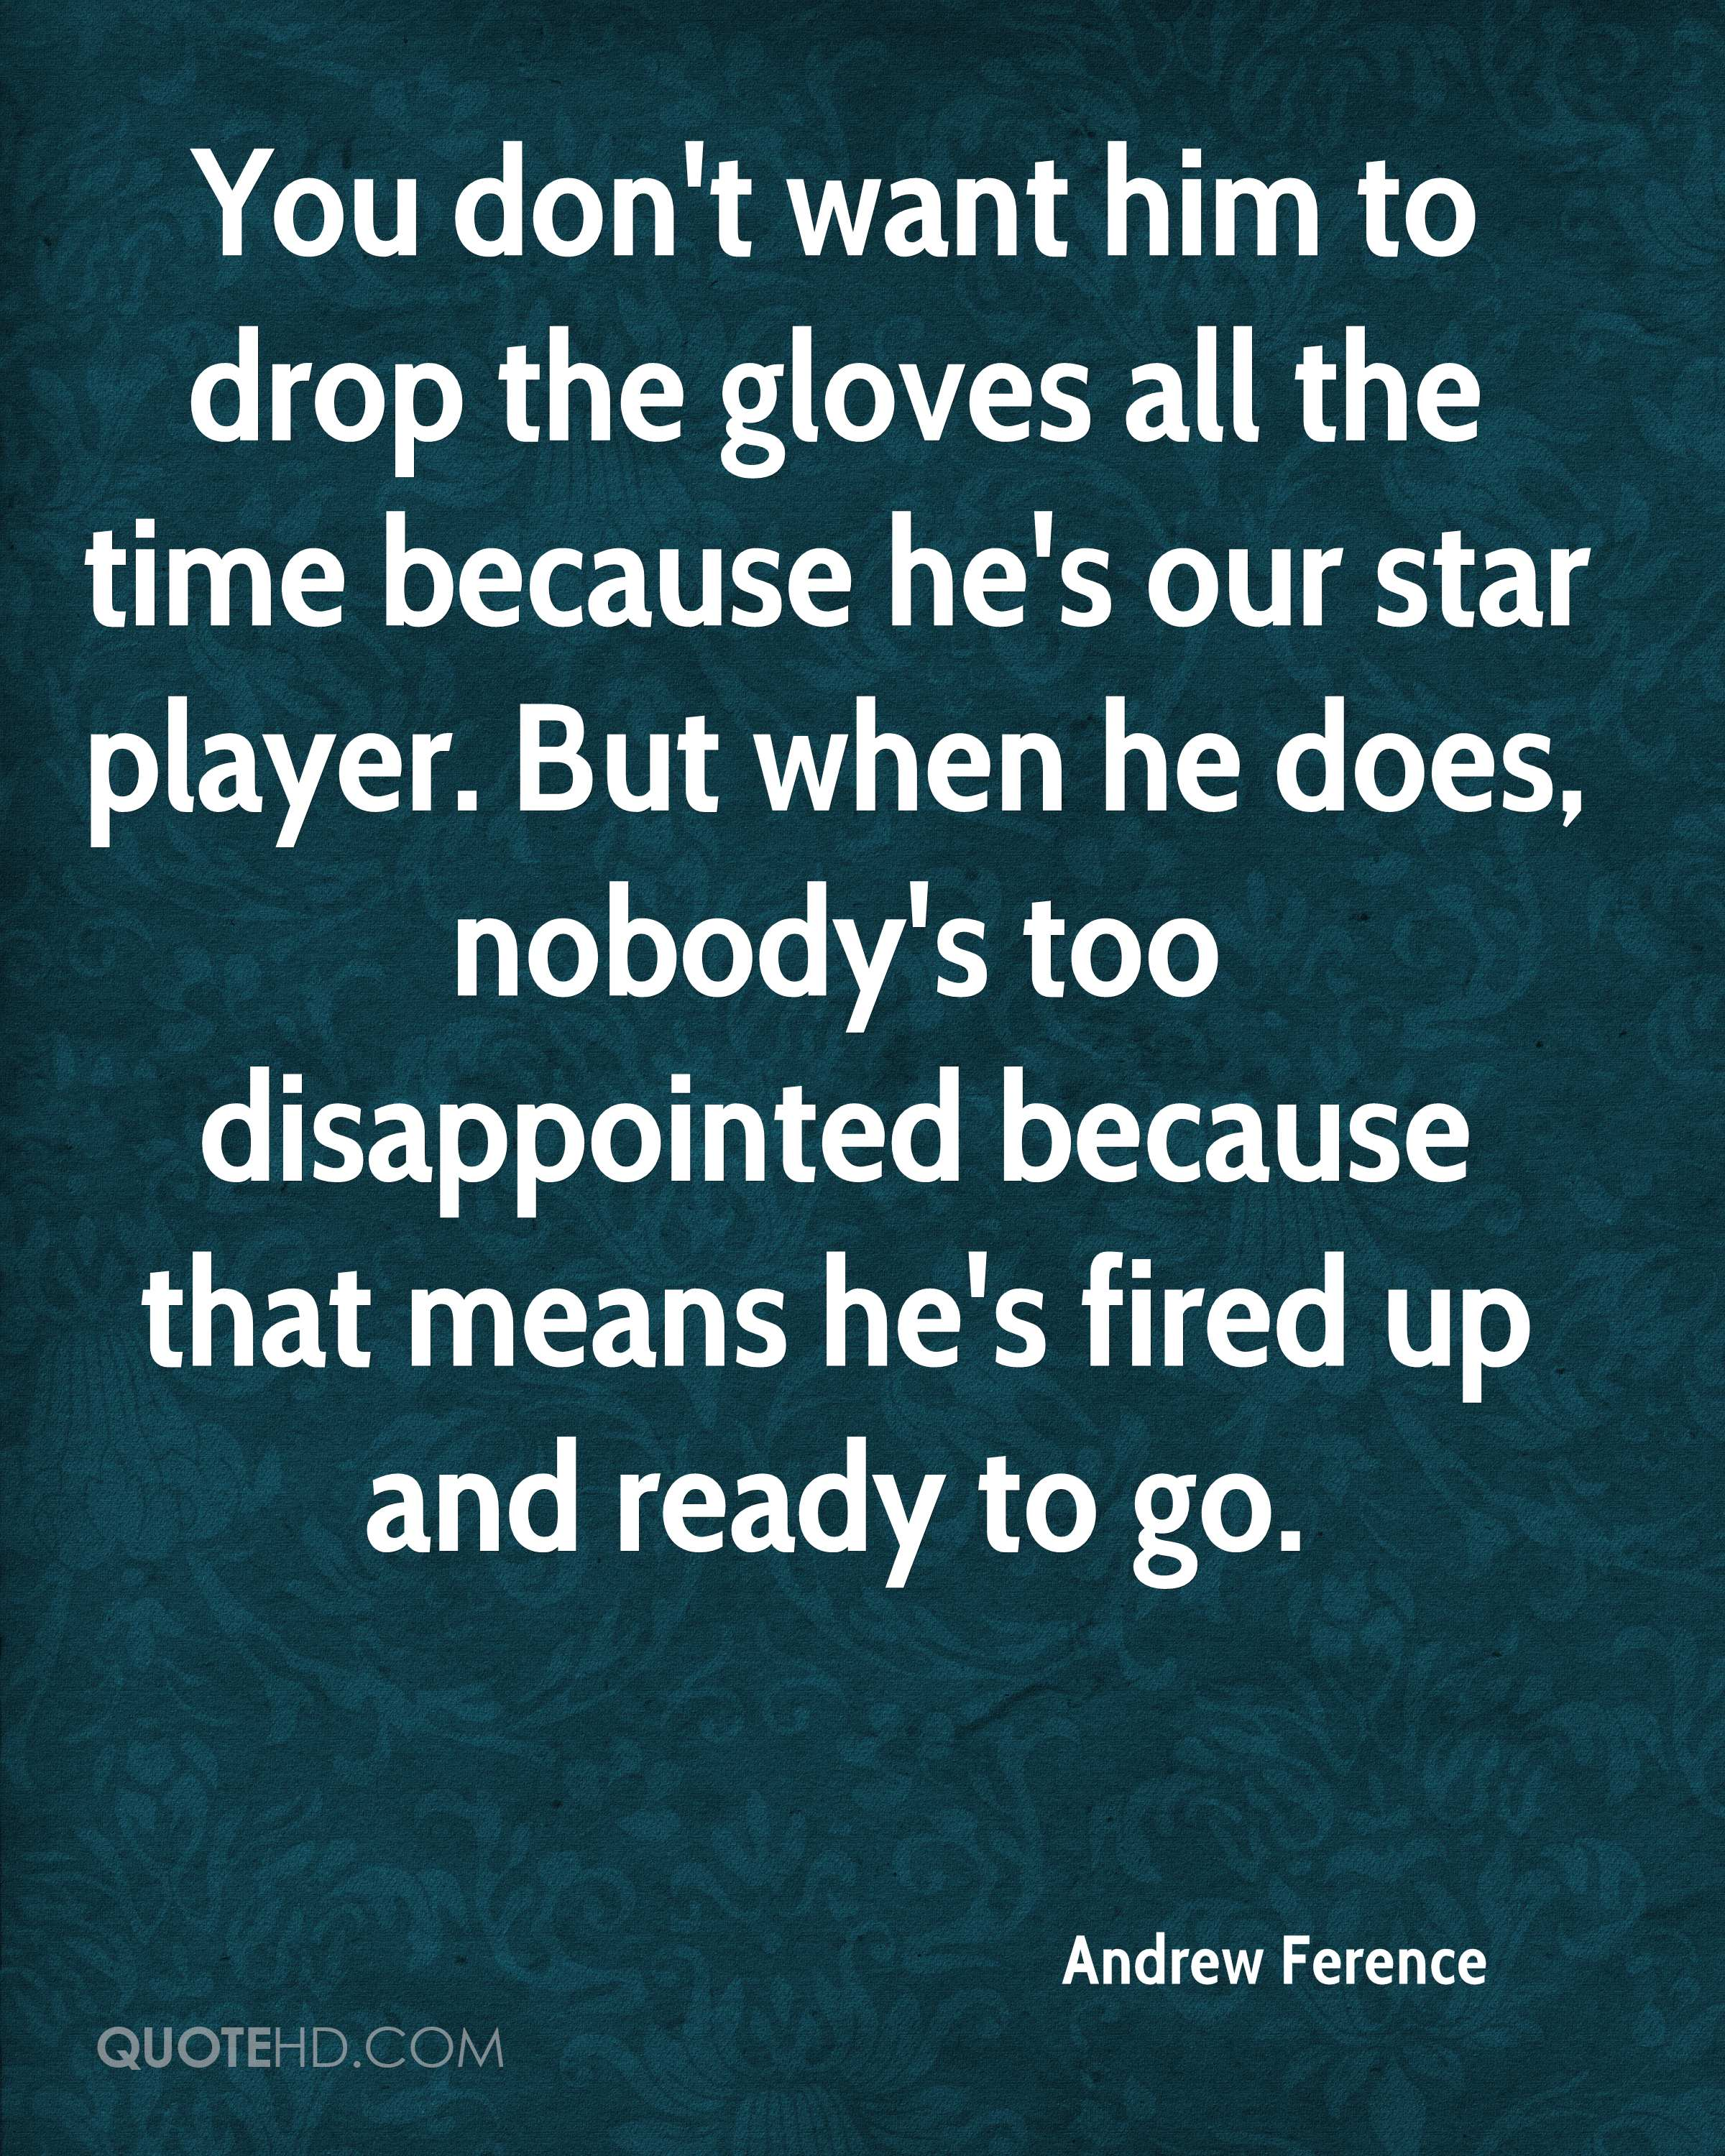 You don't want him to drop the gloves all the time because he's our star player. But when he does, nobody's too disappointed because that means he's fired up and ready to go.